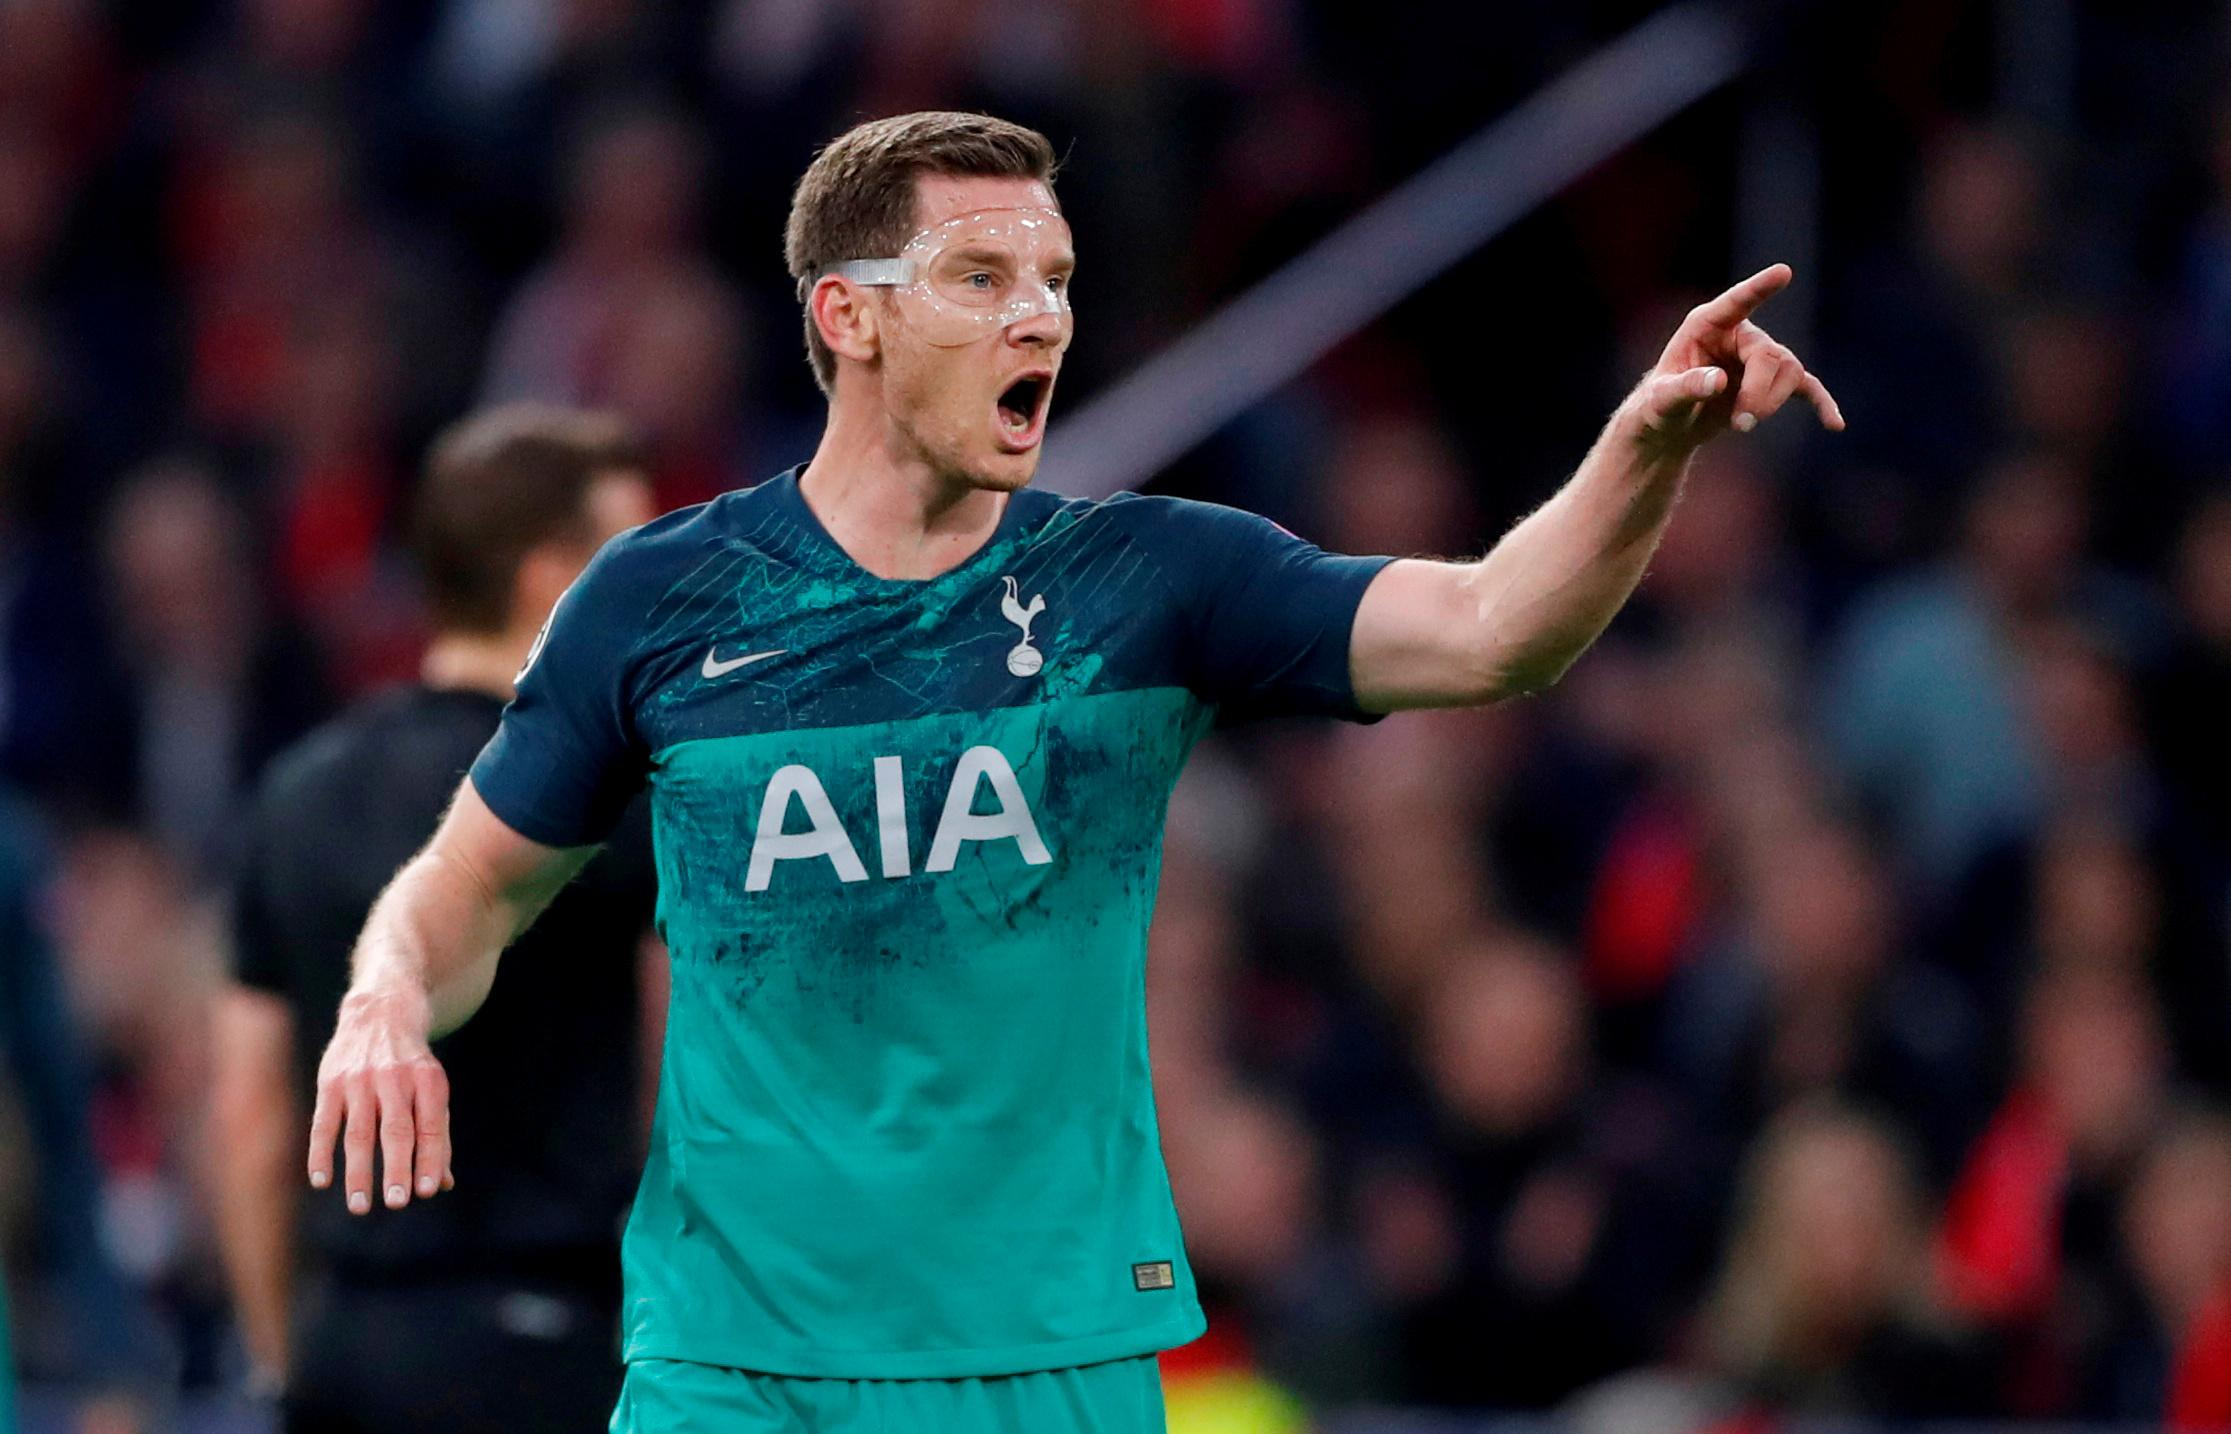 Vertonghen hopes for vindication of Pochettino's approach in final